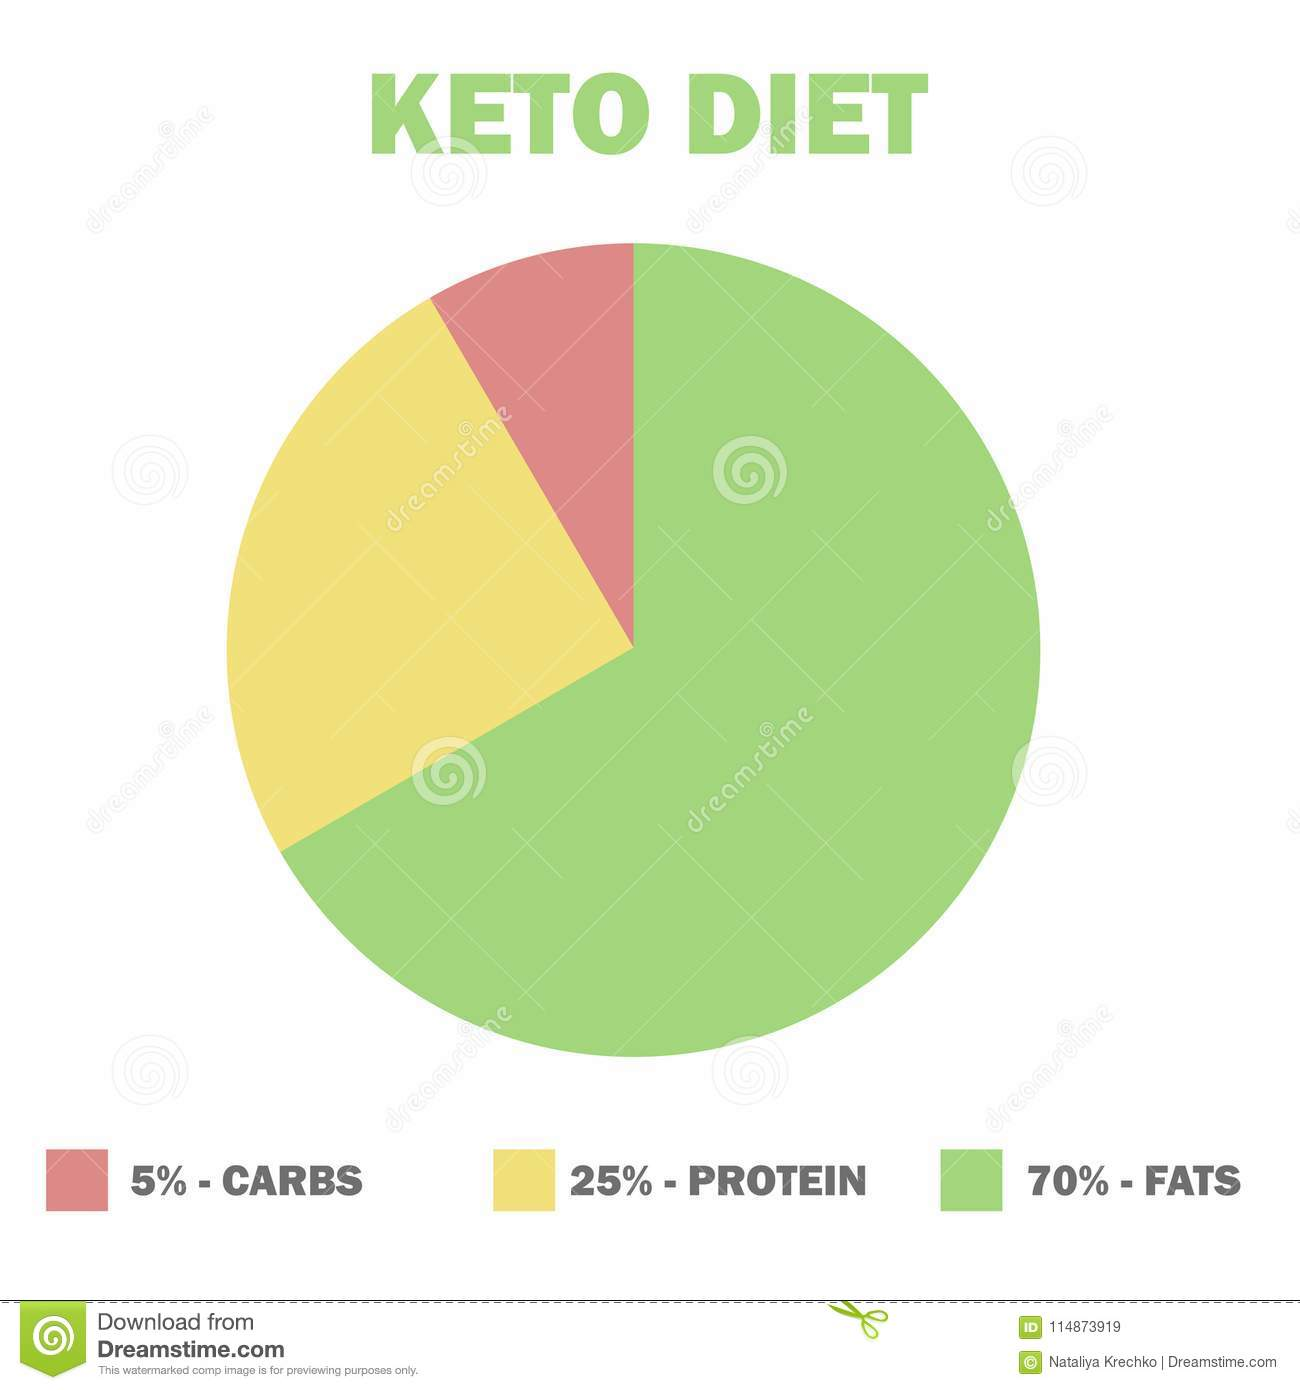 hight resolution of ketogenic diet macros diagram low carbs high healthy fat